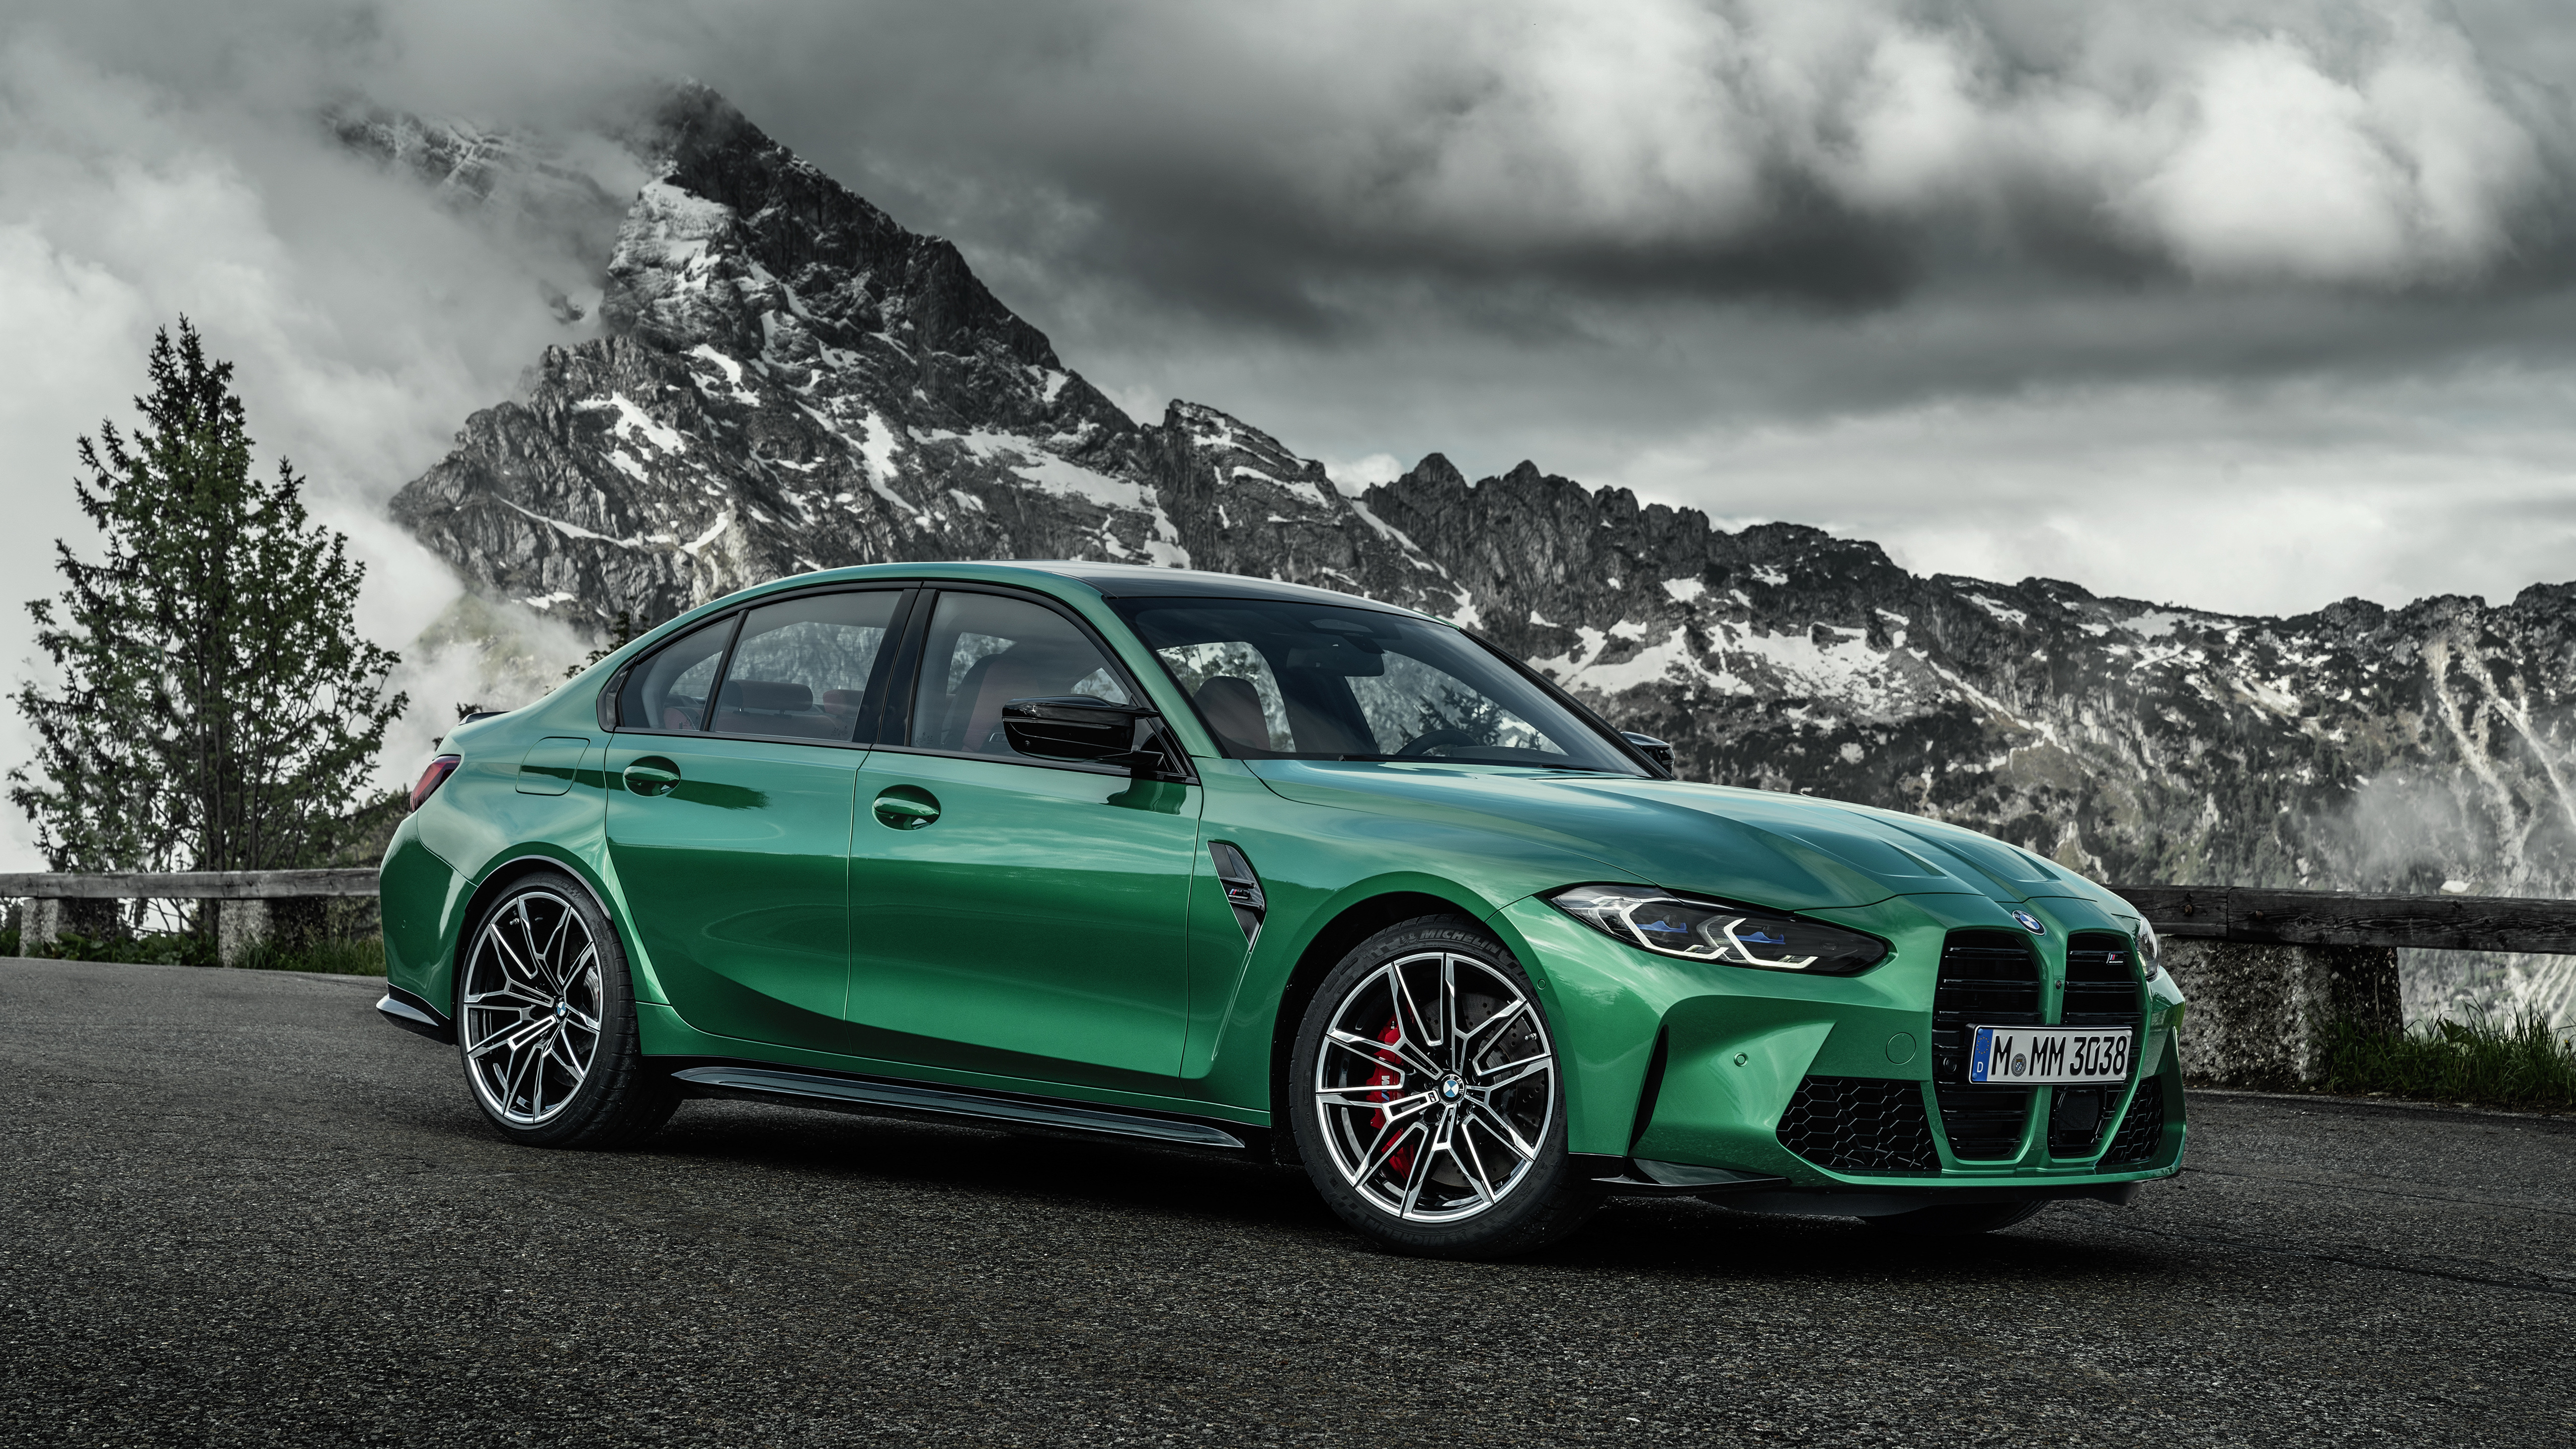 BMW M3 Competition 2020 5K 2 Wallpaper | HD Car Wallpapers ...